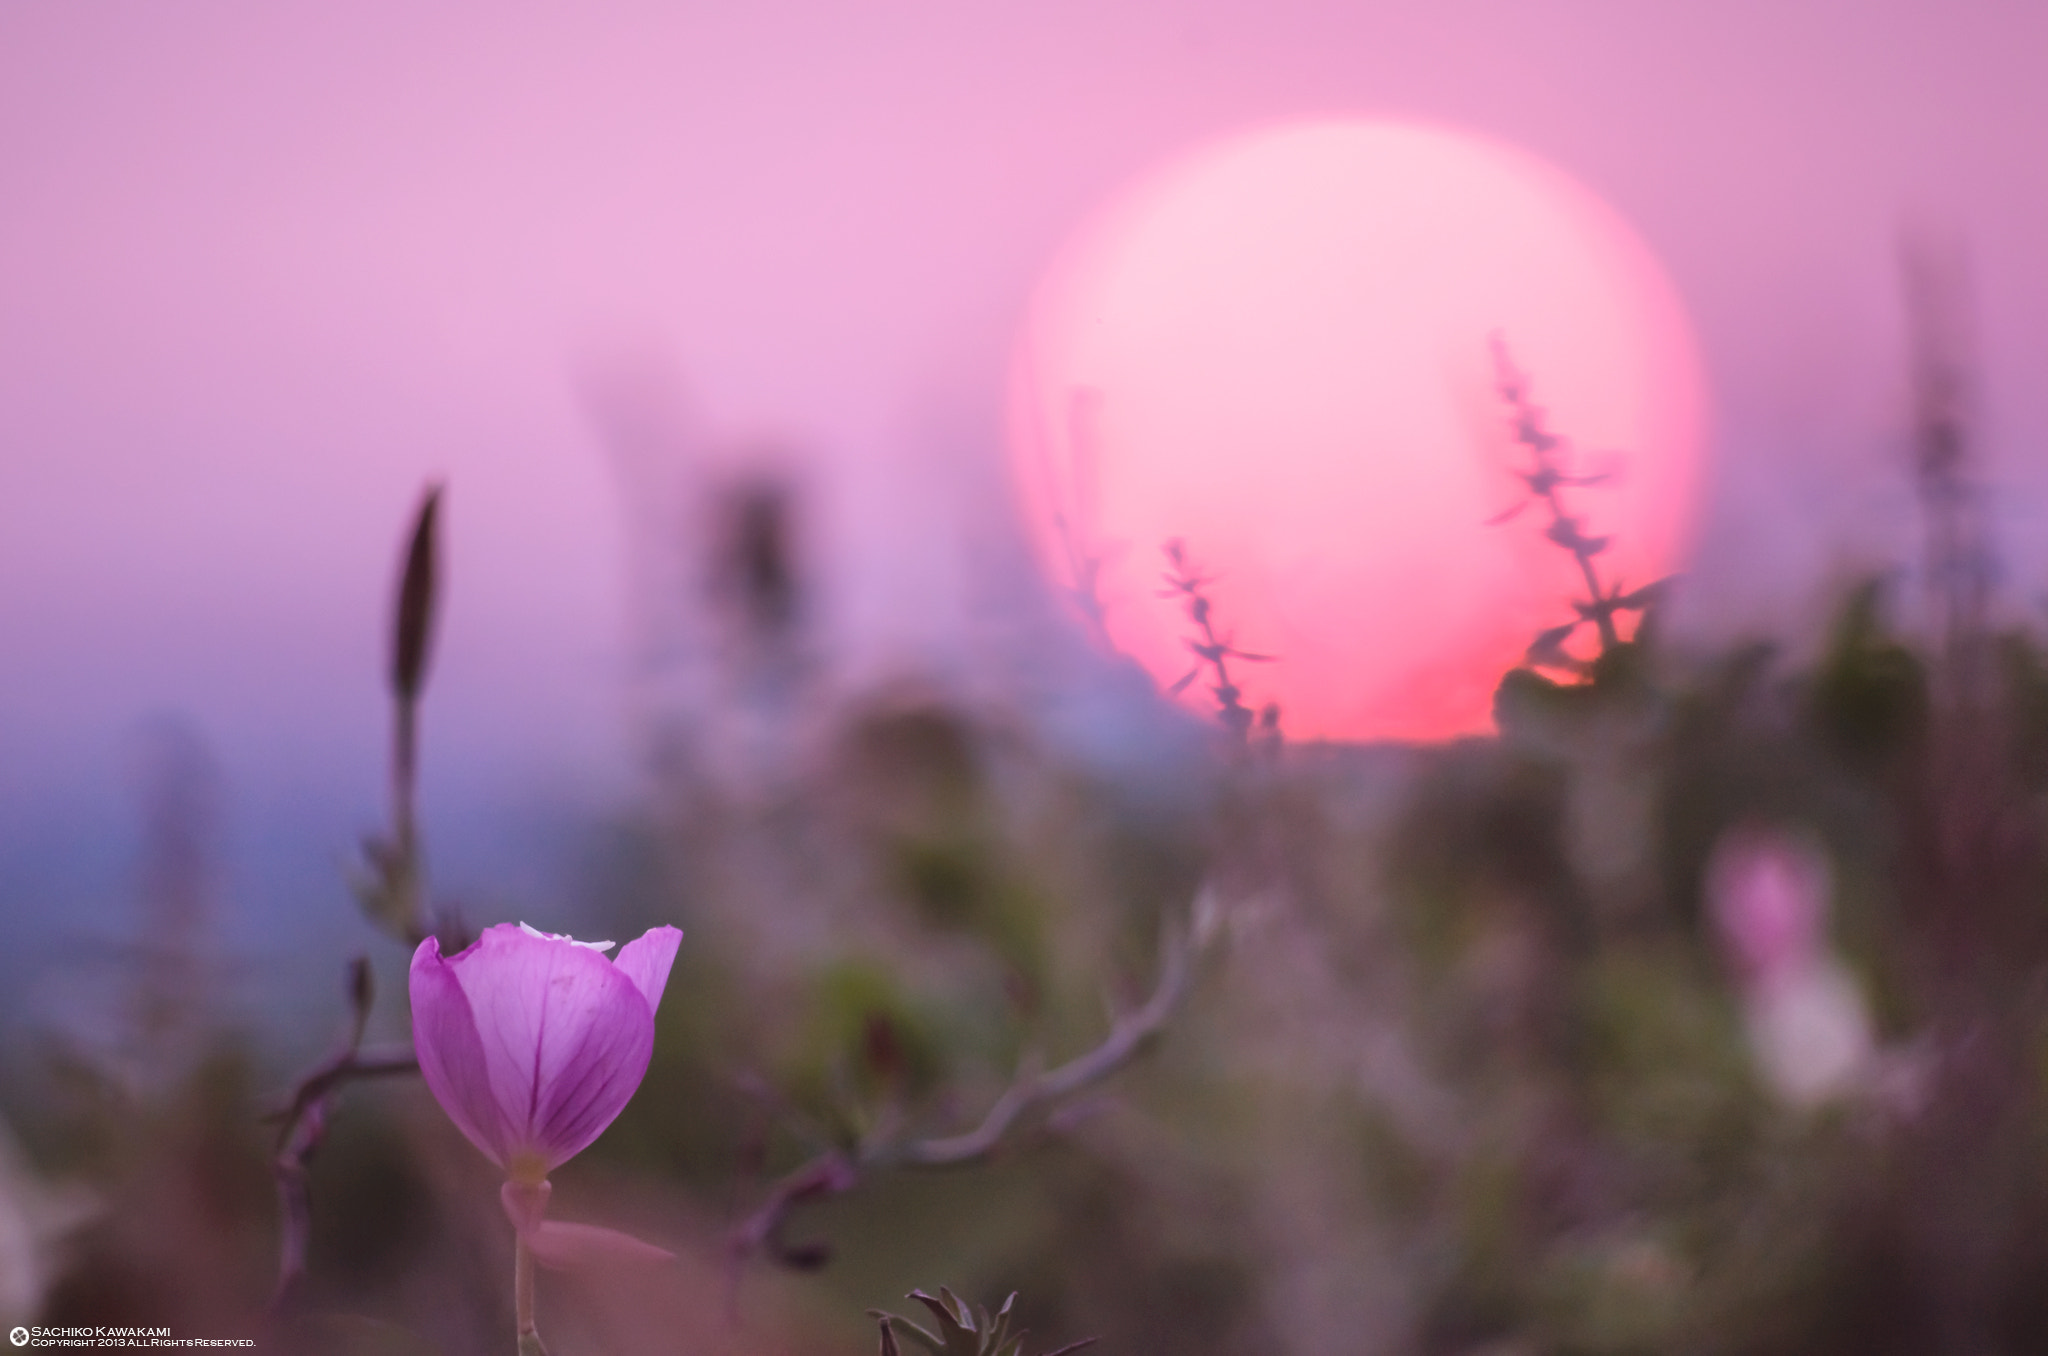 Photograph Flowers and sunset by Sachiko Kawakami on 500px